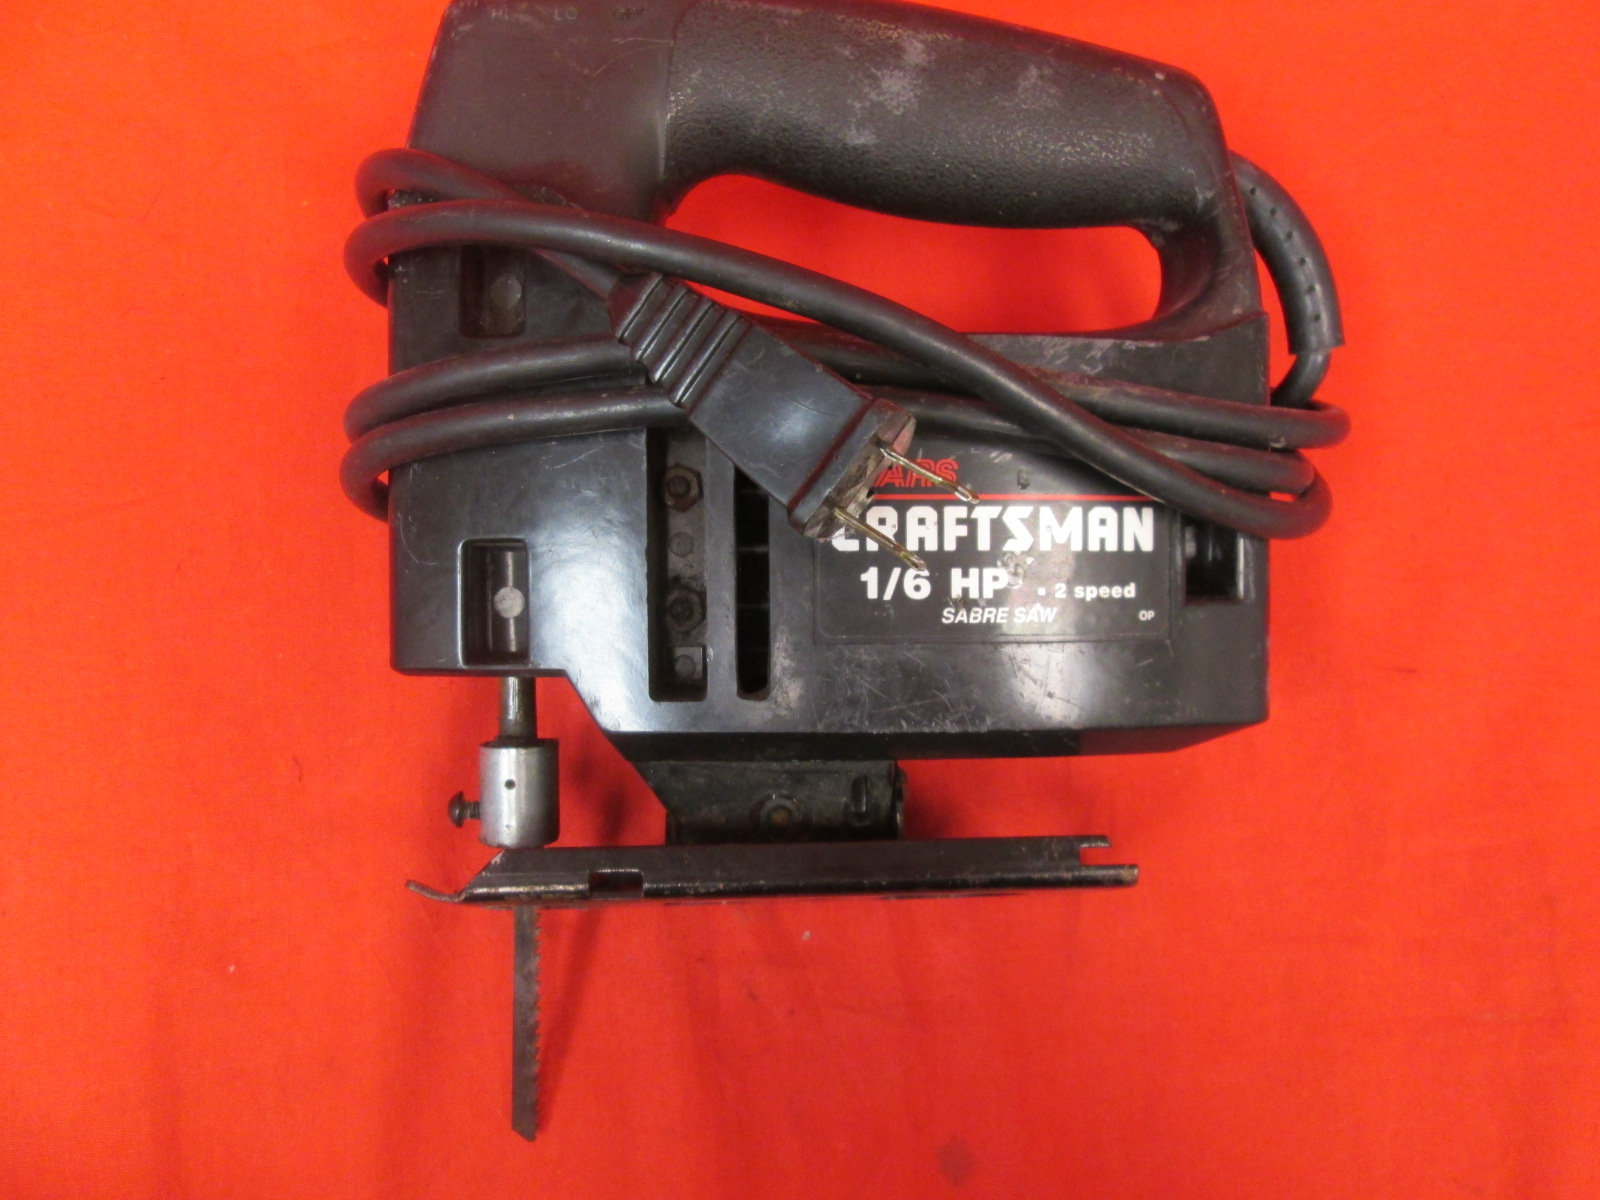 Sears Craftsman 315.171400 1/6 HP 2 Speed Double Insulated 1/2 Stroke